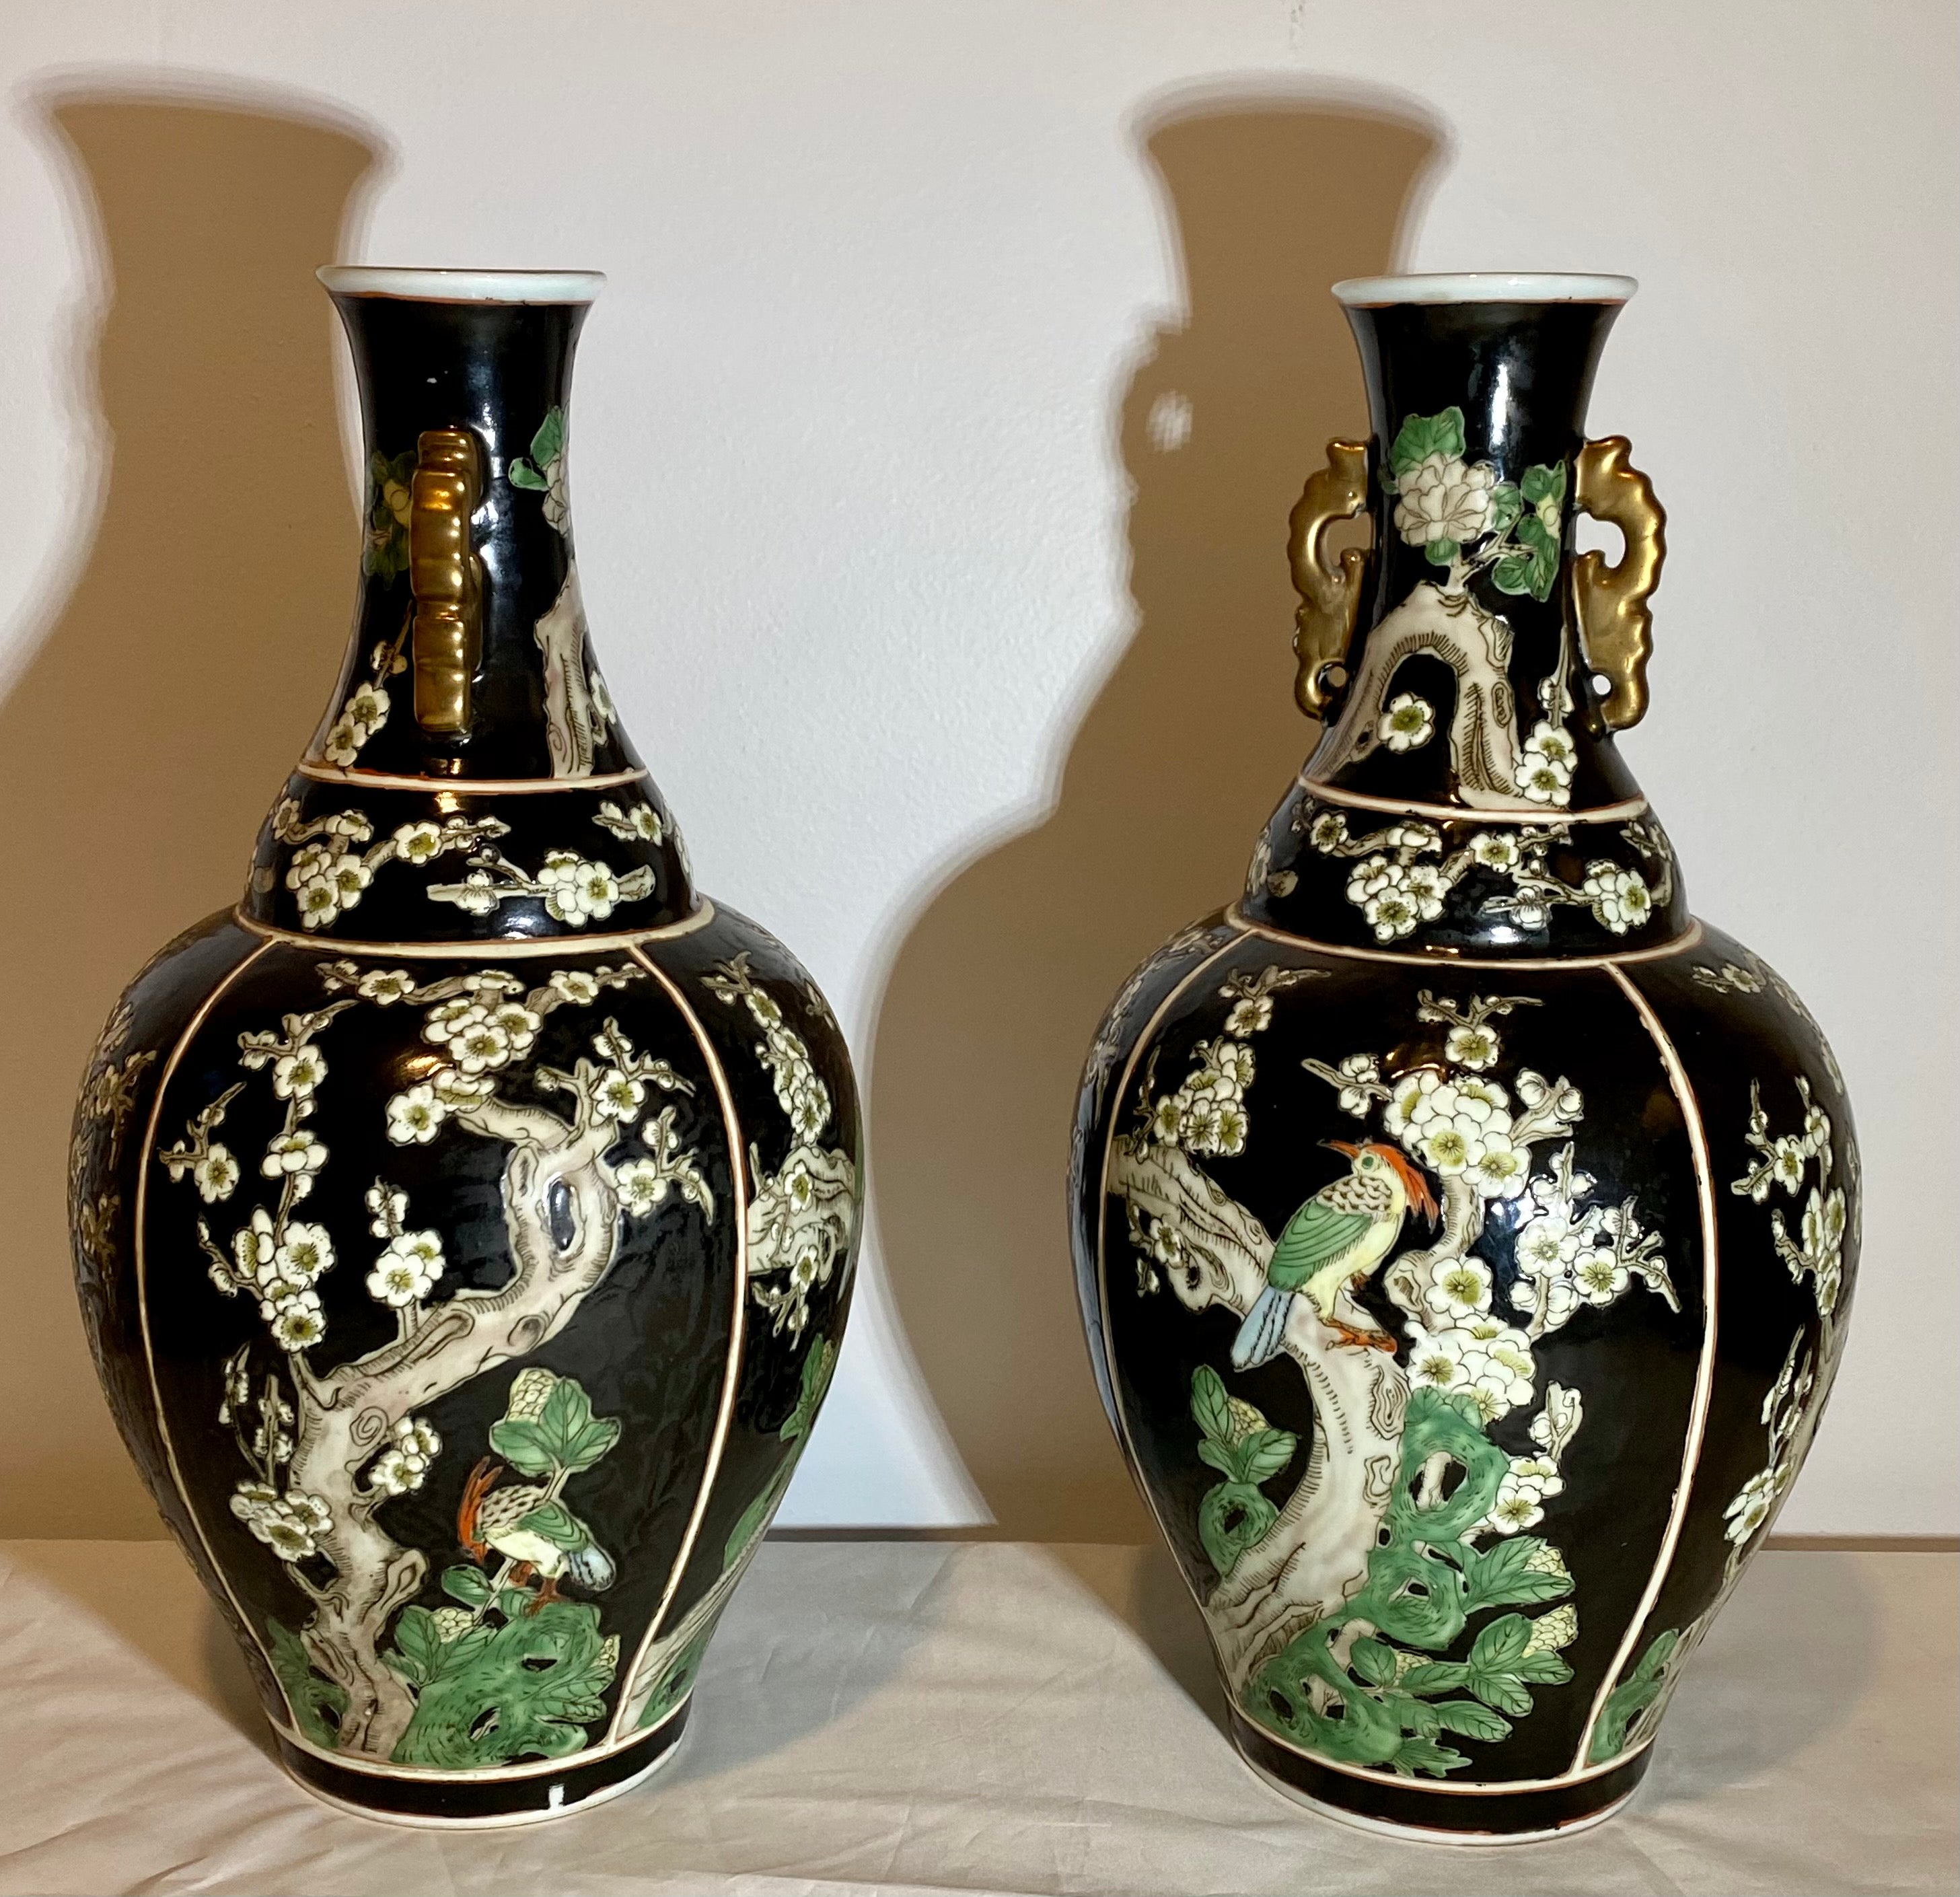 Pair of Famille Noire Vase Previously Offered by Christie's